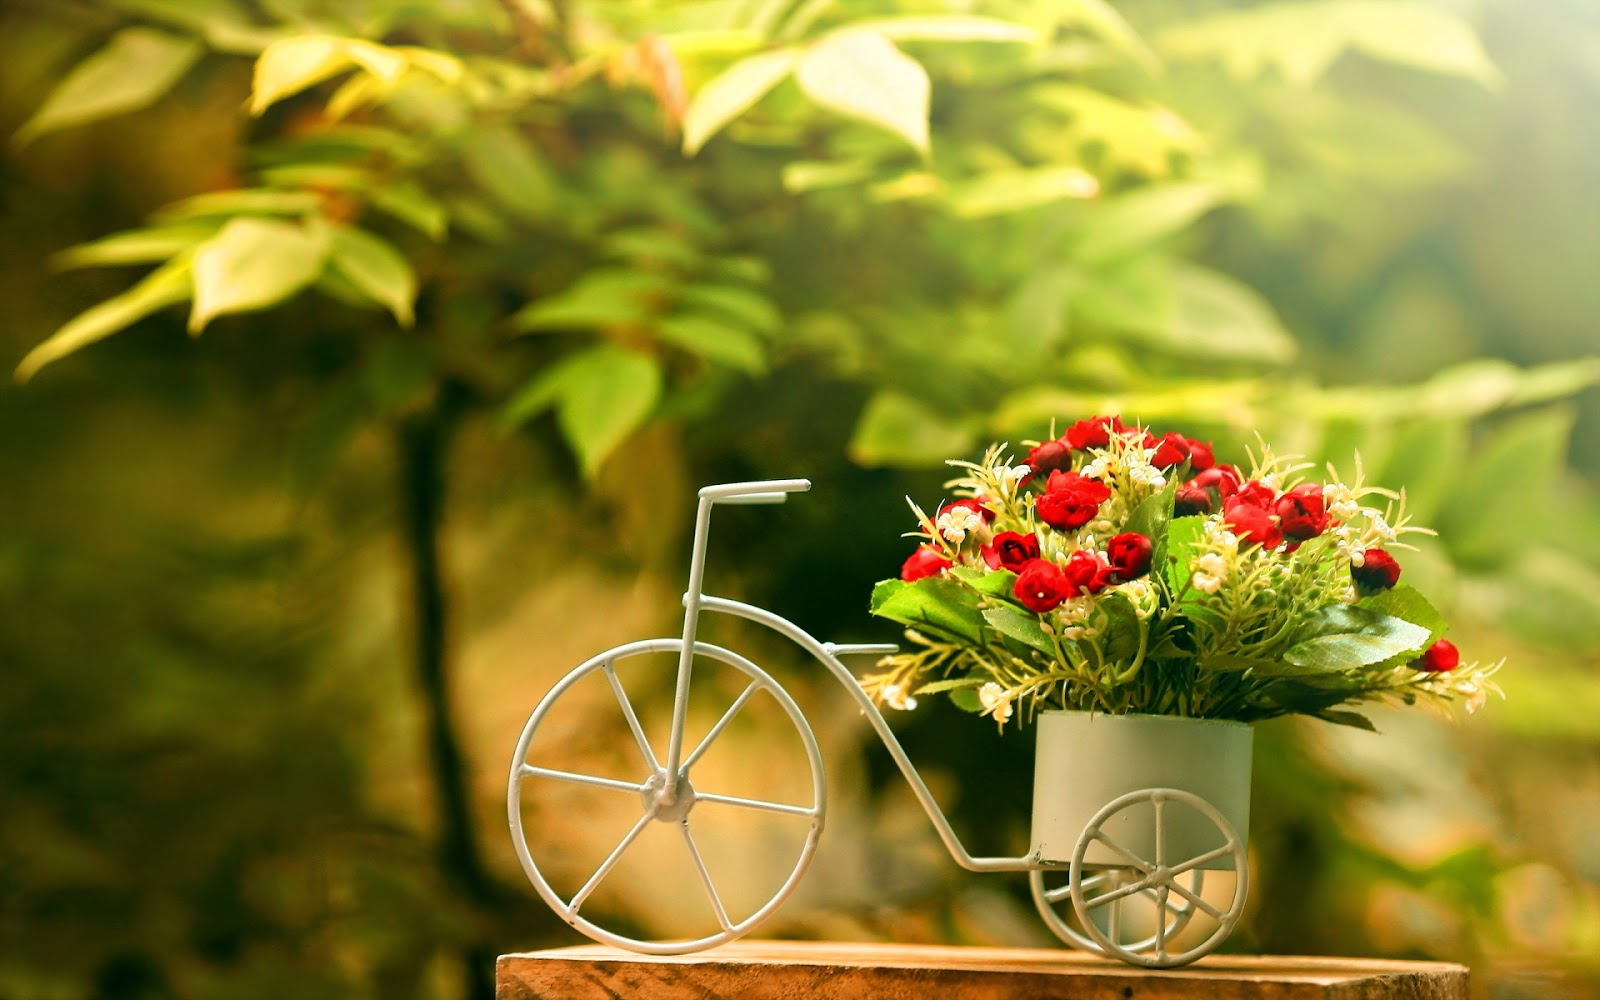 bicycles with flowers wallpaper - photo #29